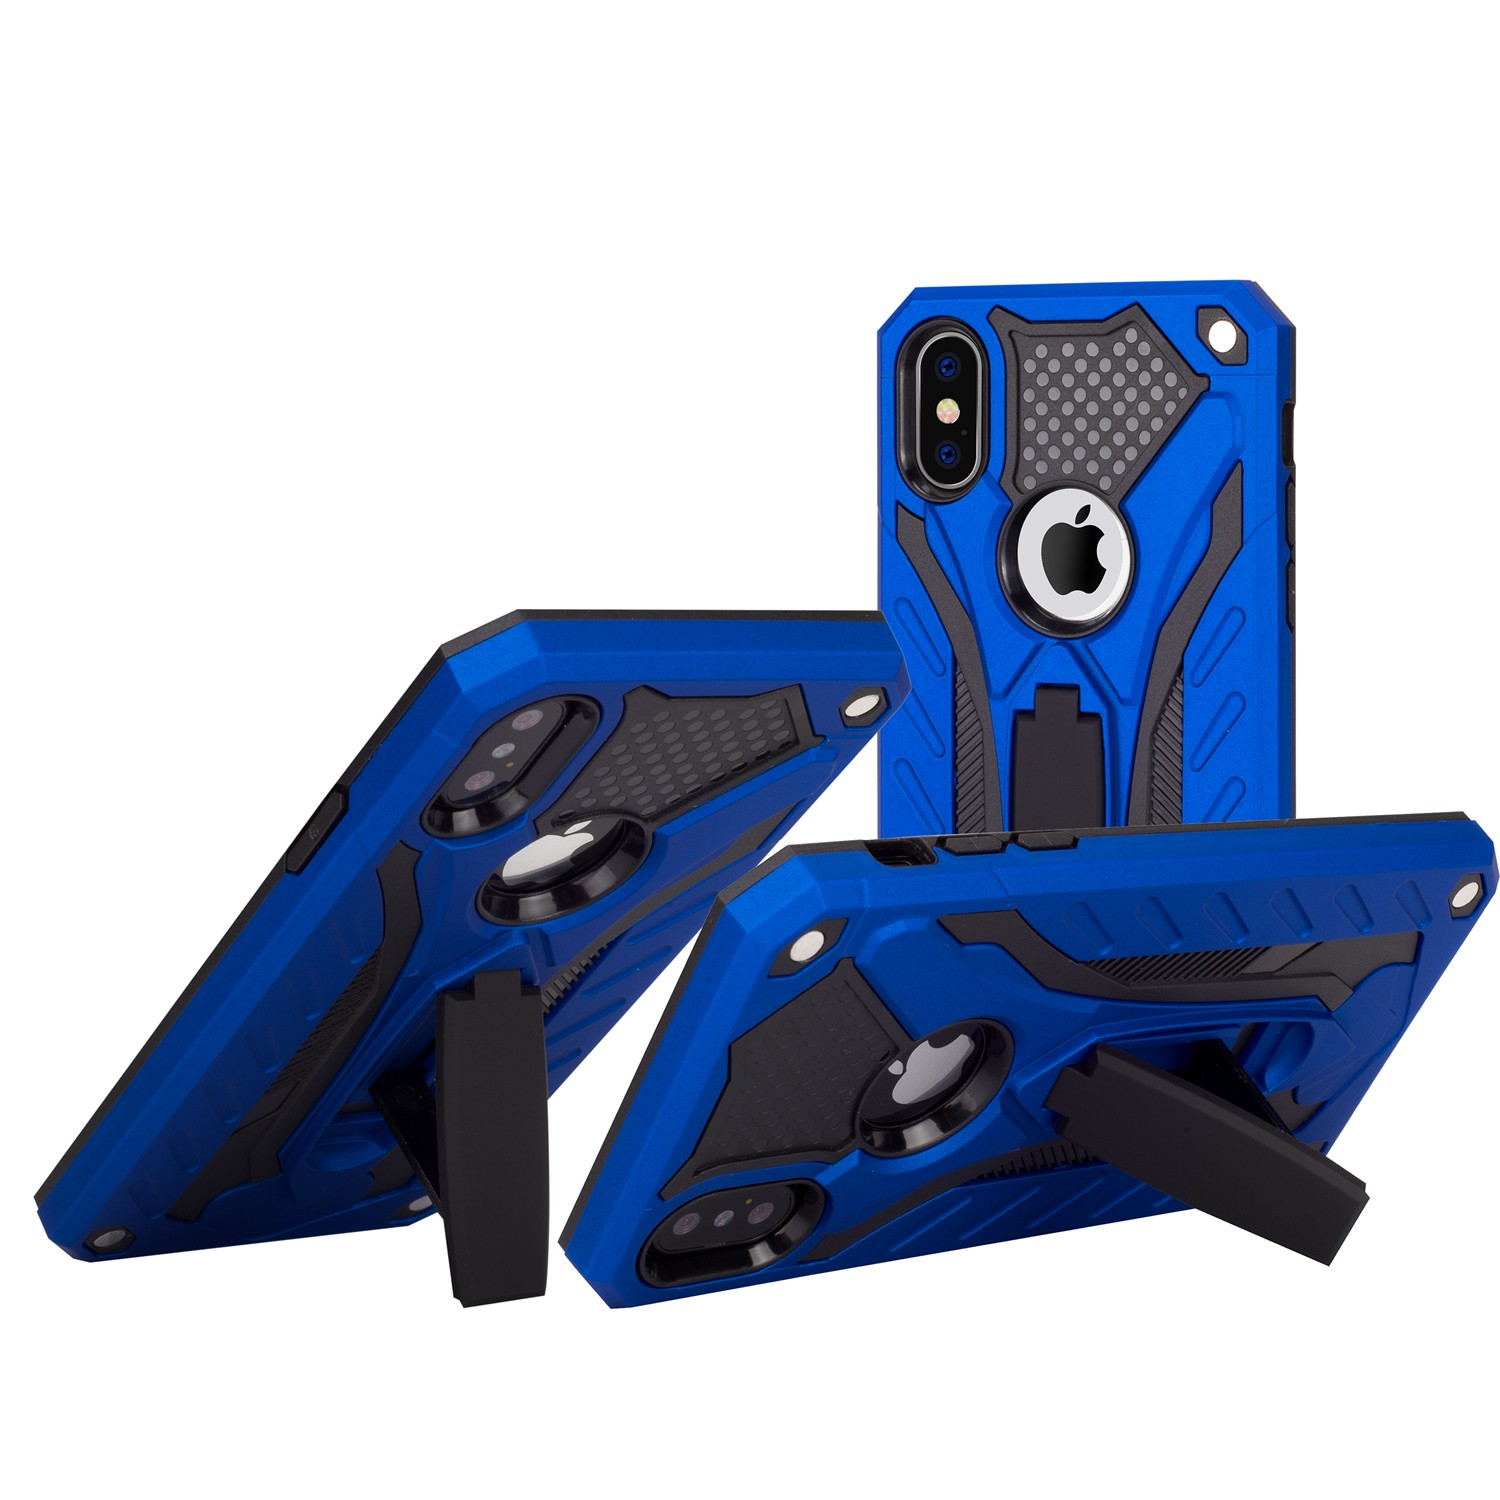 Stand <font><b>case</b></font> Silicone with <font><b>Armor</b></font> for <font><b>Samsung</b></font> Galaxy <font><b>A50</b></font> Blue image